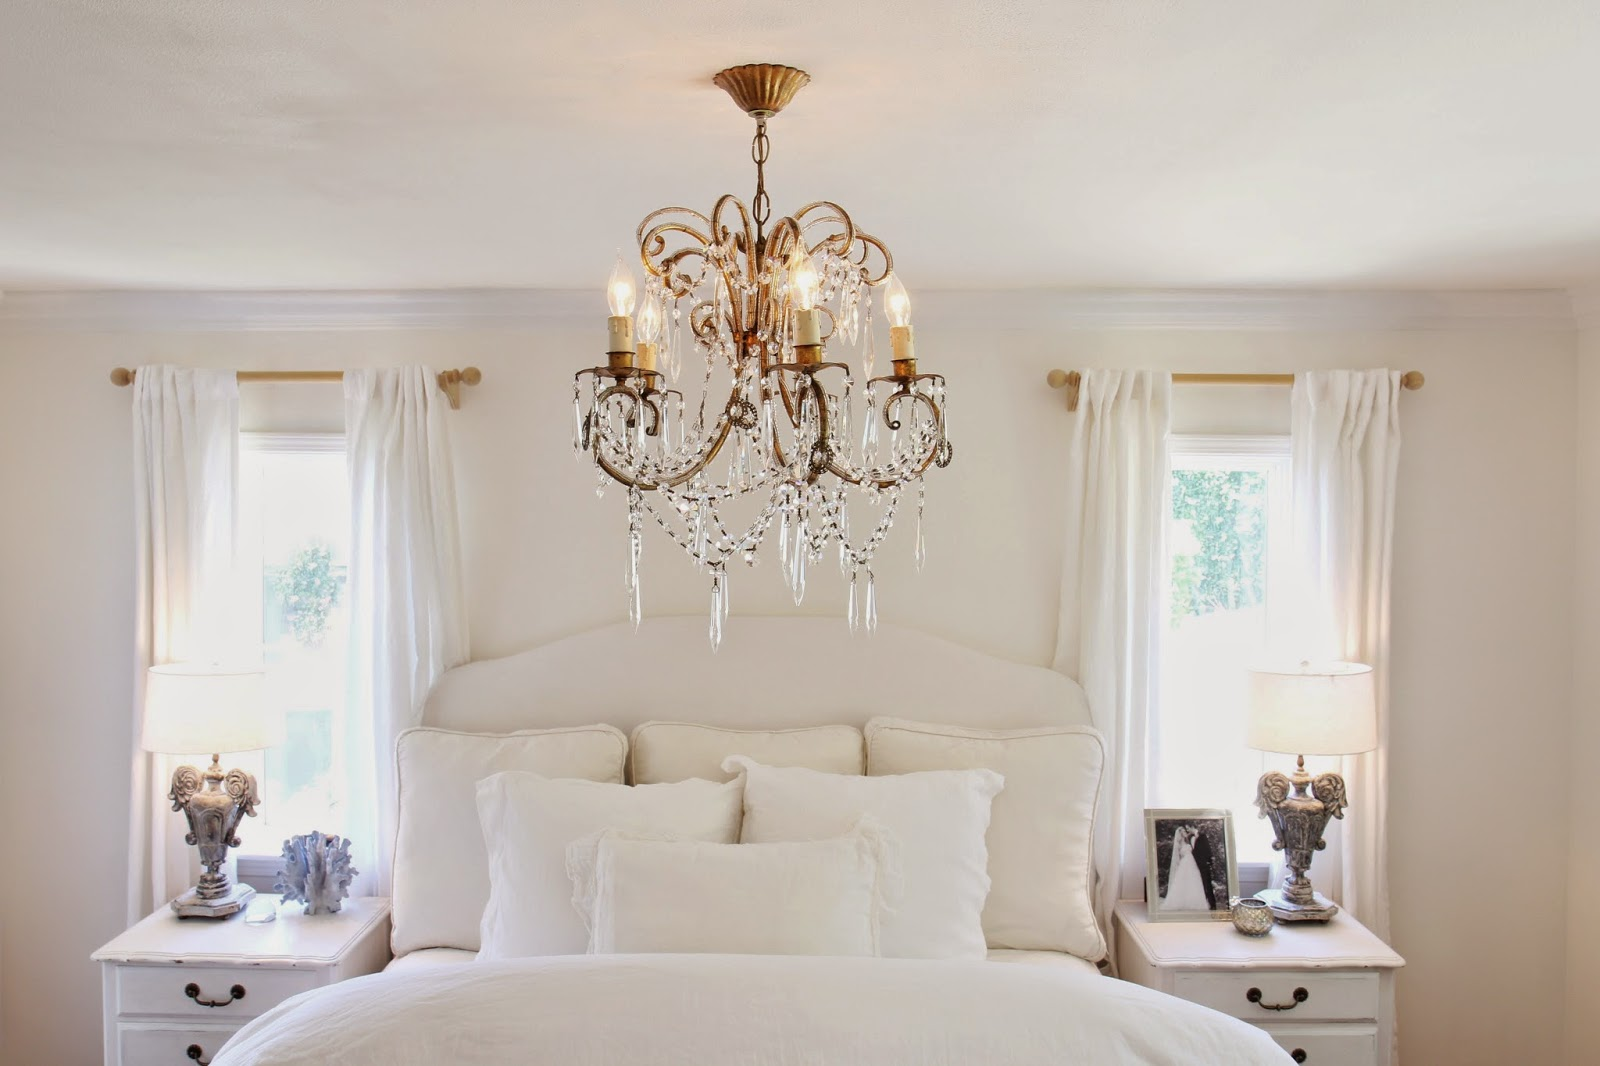 a chandelier for the master bedroom - Bedroom Chandelier